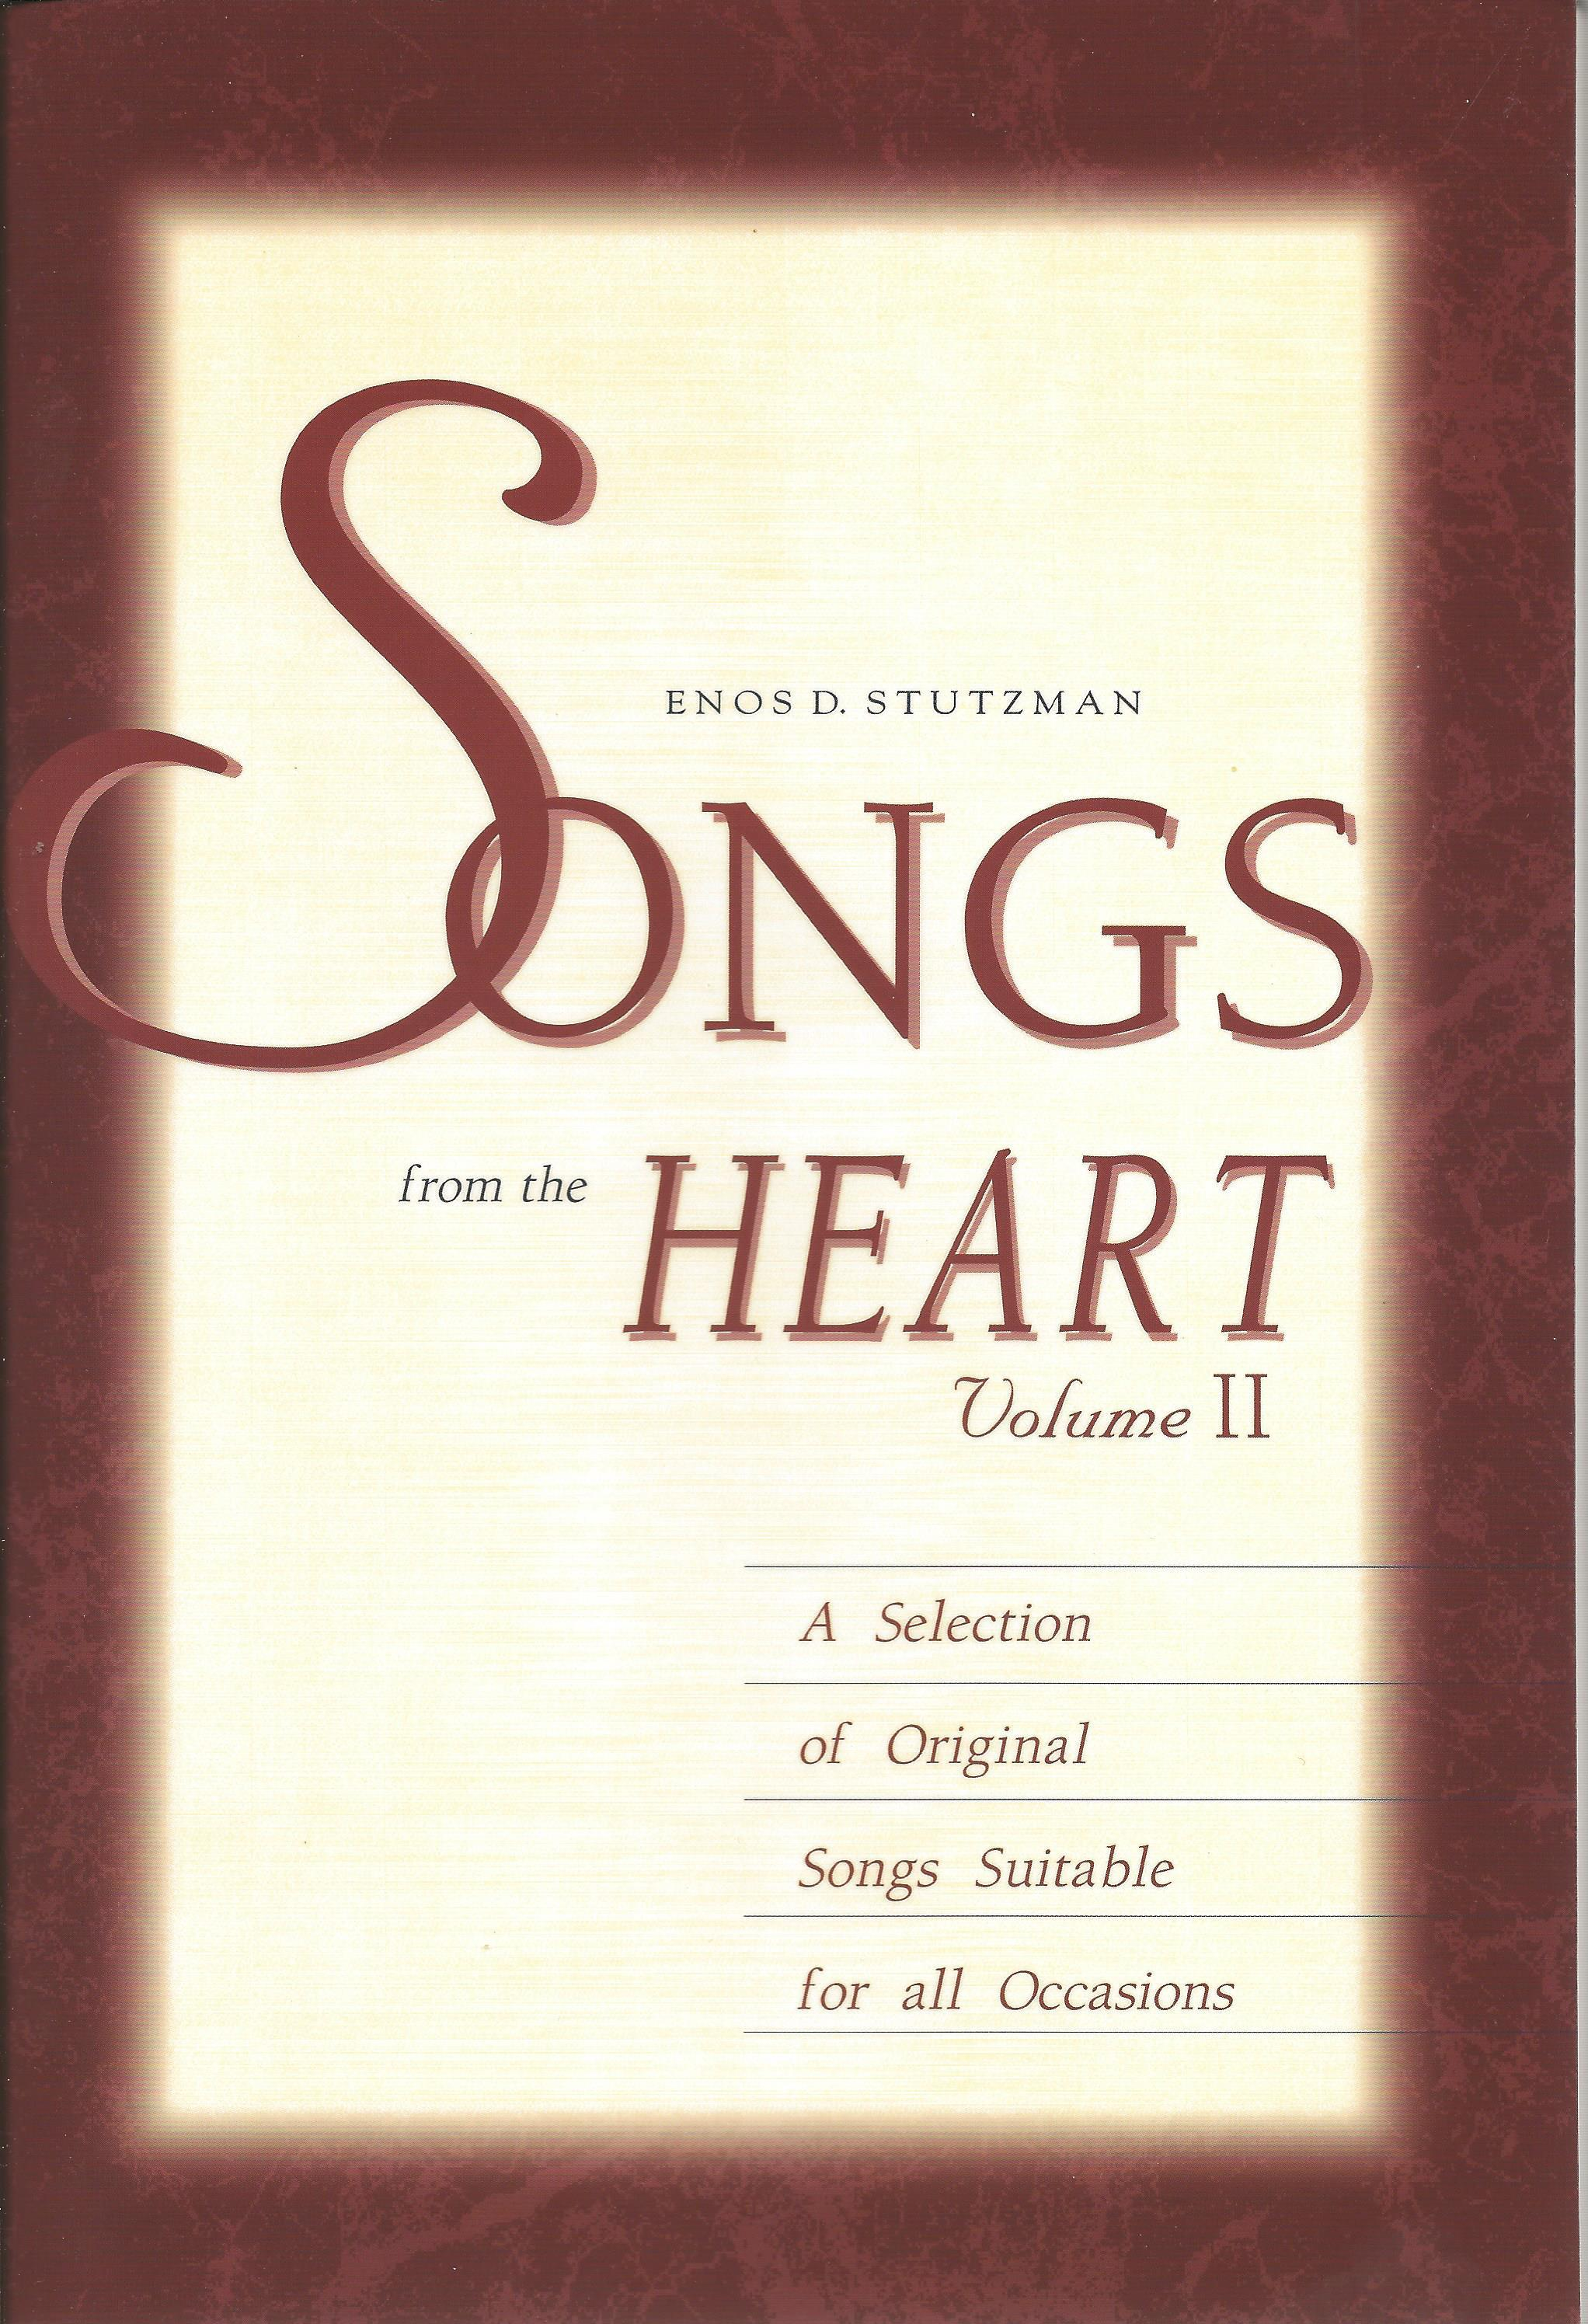 SONGS FROM THE HEART VOLUME II Enos Stutzman